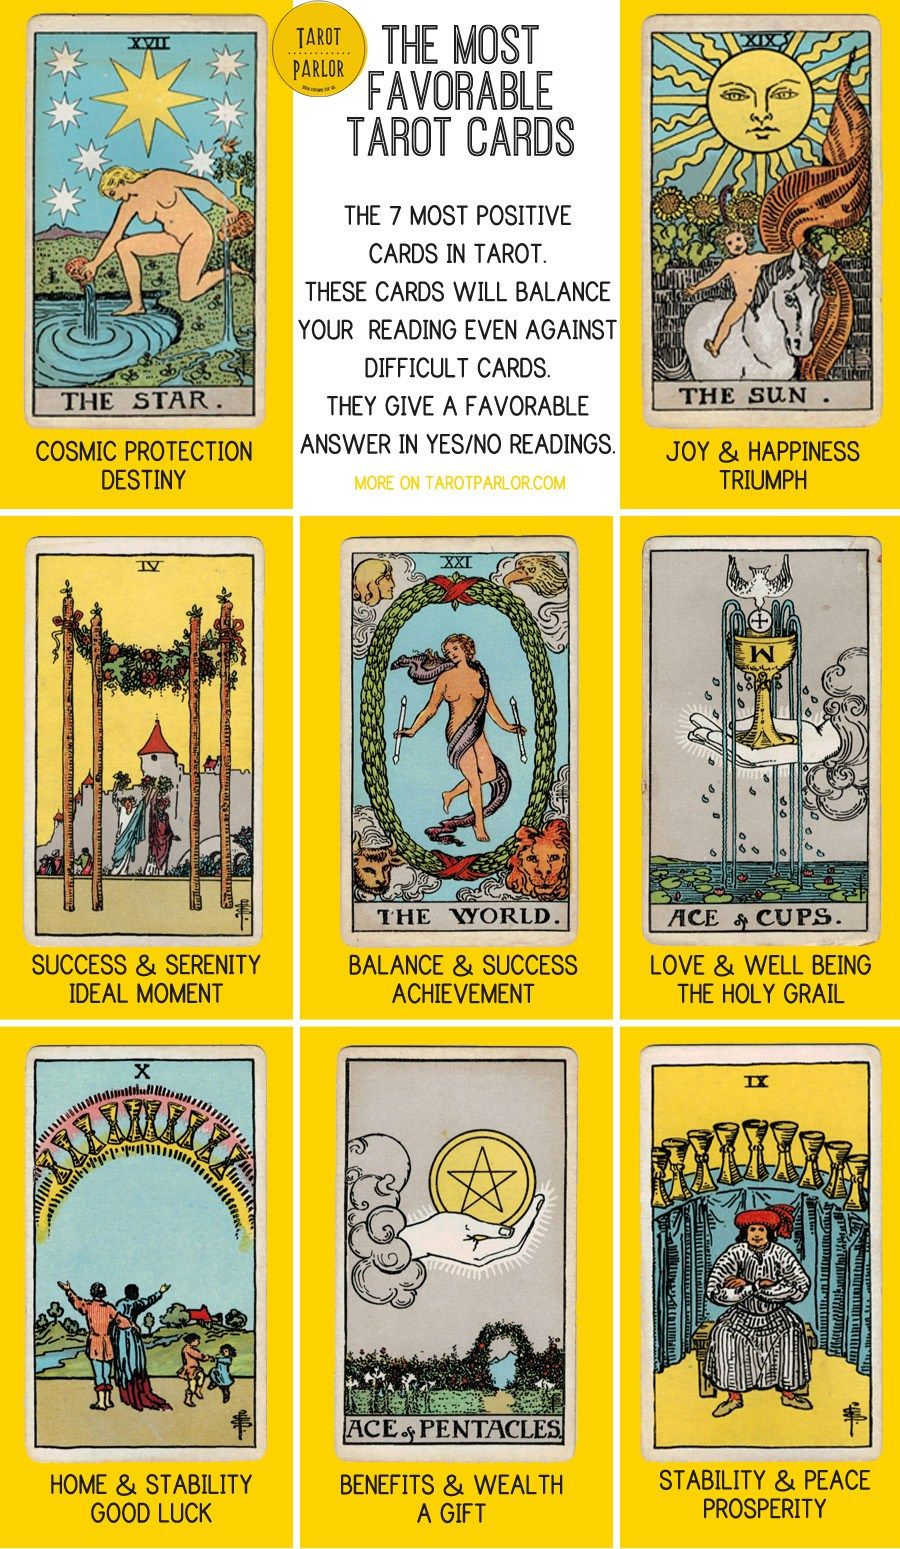 Tarot And More 3 Tarot Symbolism: Most Positive Tarot Cards